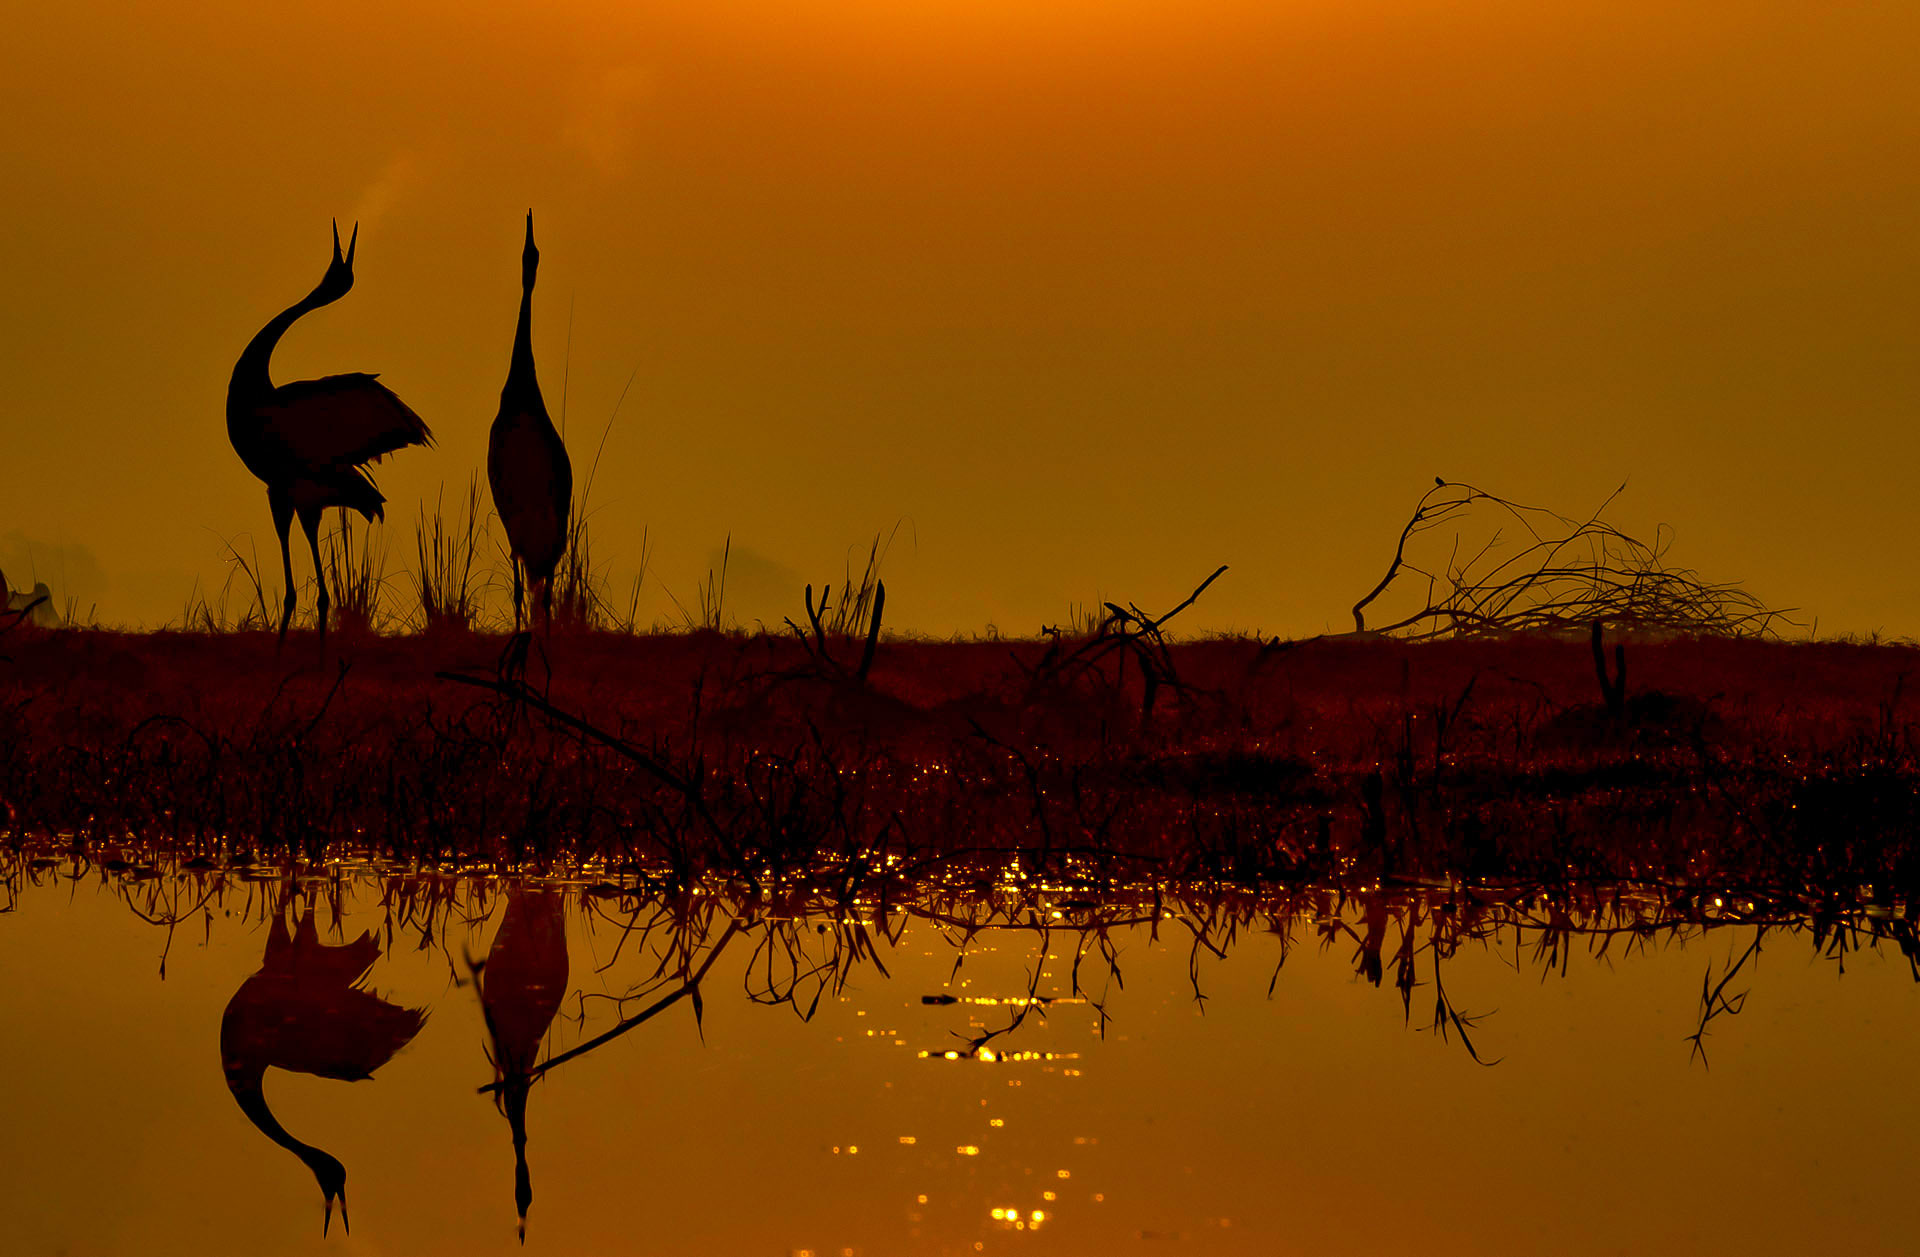 The park harbours around 366 species of birds, including the tallest flying bird in the world- the sarus crane.  Cover Photo: The habitat of the 29-sq-km Keoladeo Ghana National Park in Rajasthan comprises dry grasslands, woodlands, woodland swamps, and human-made wetlands.